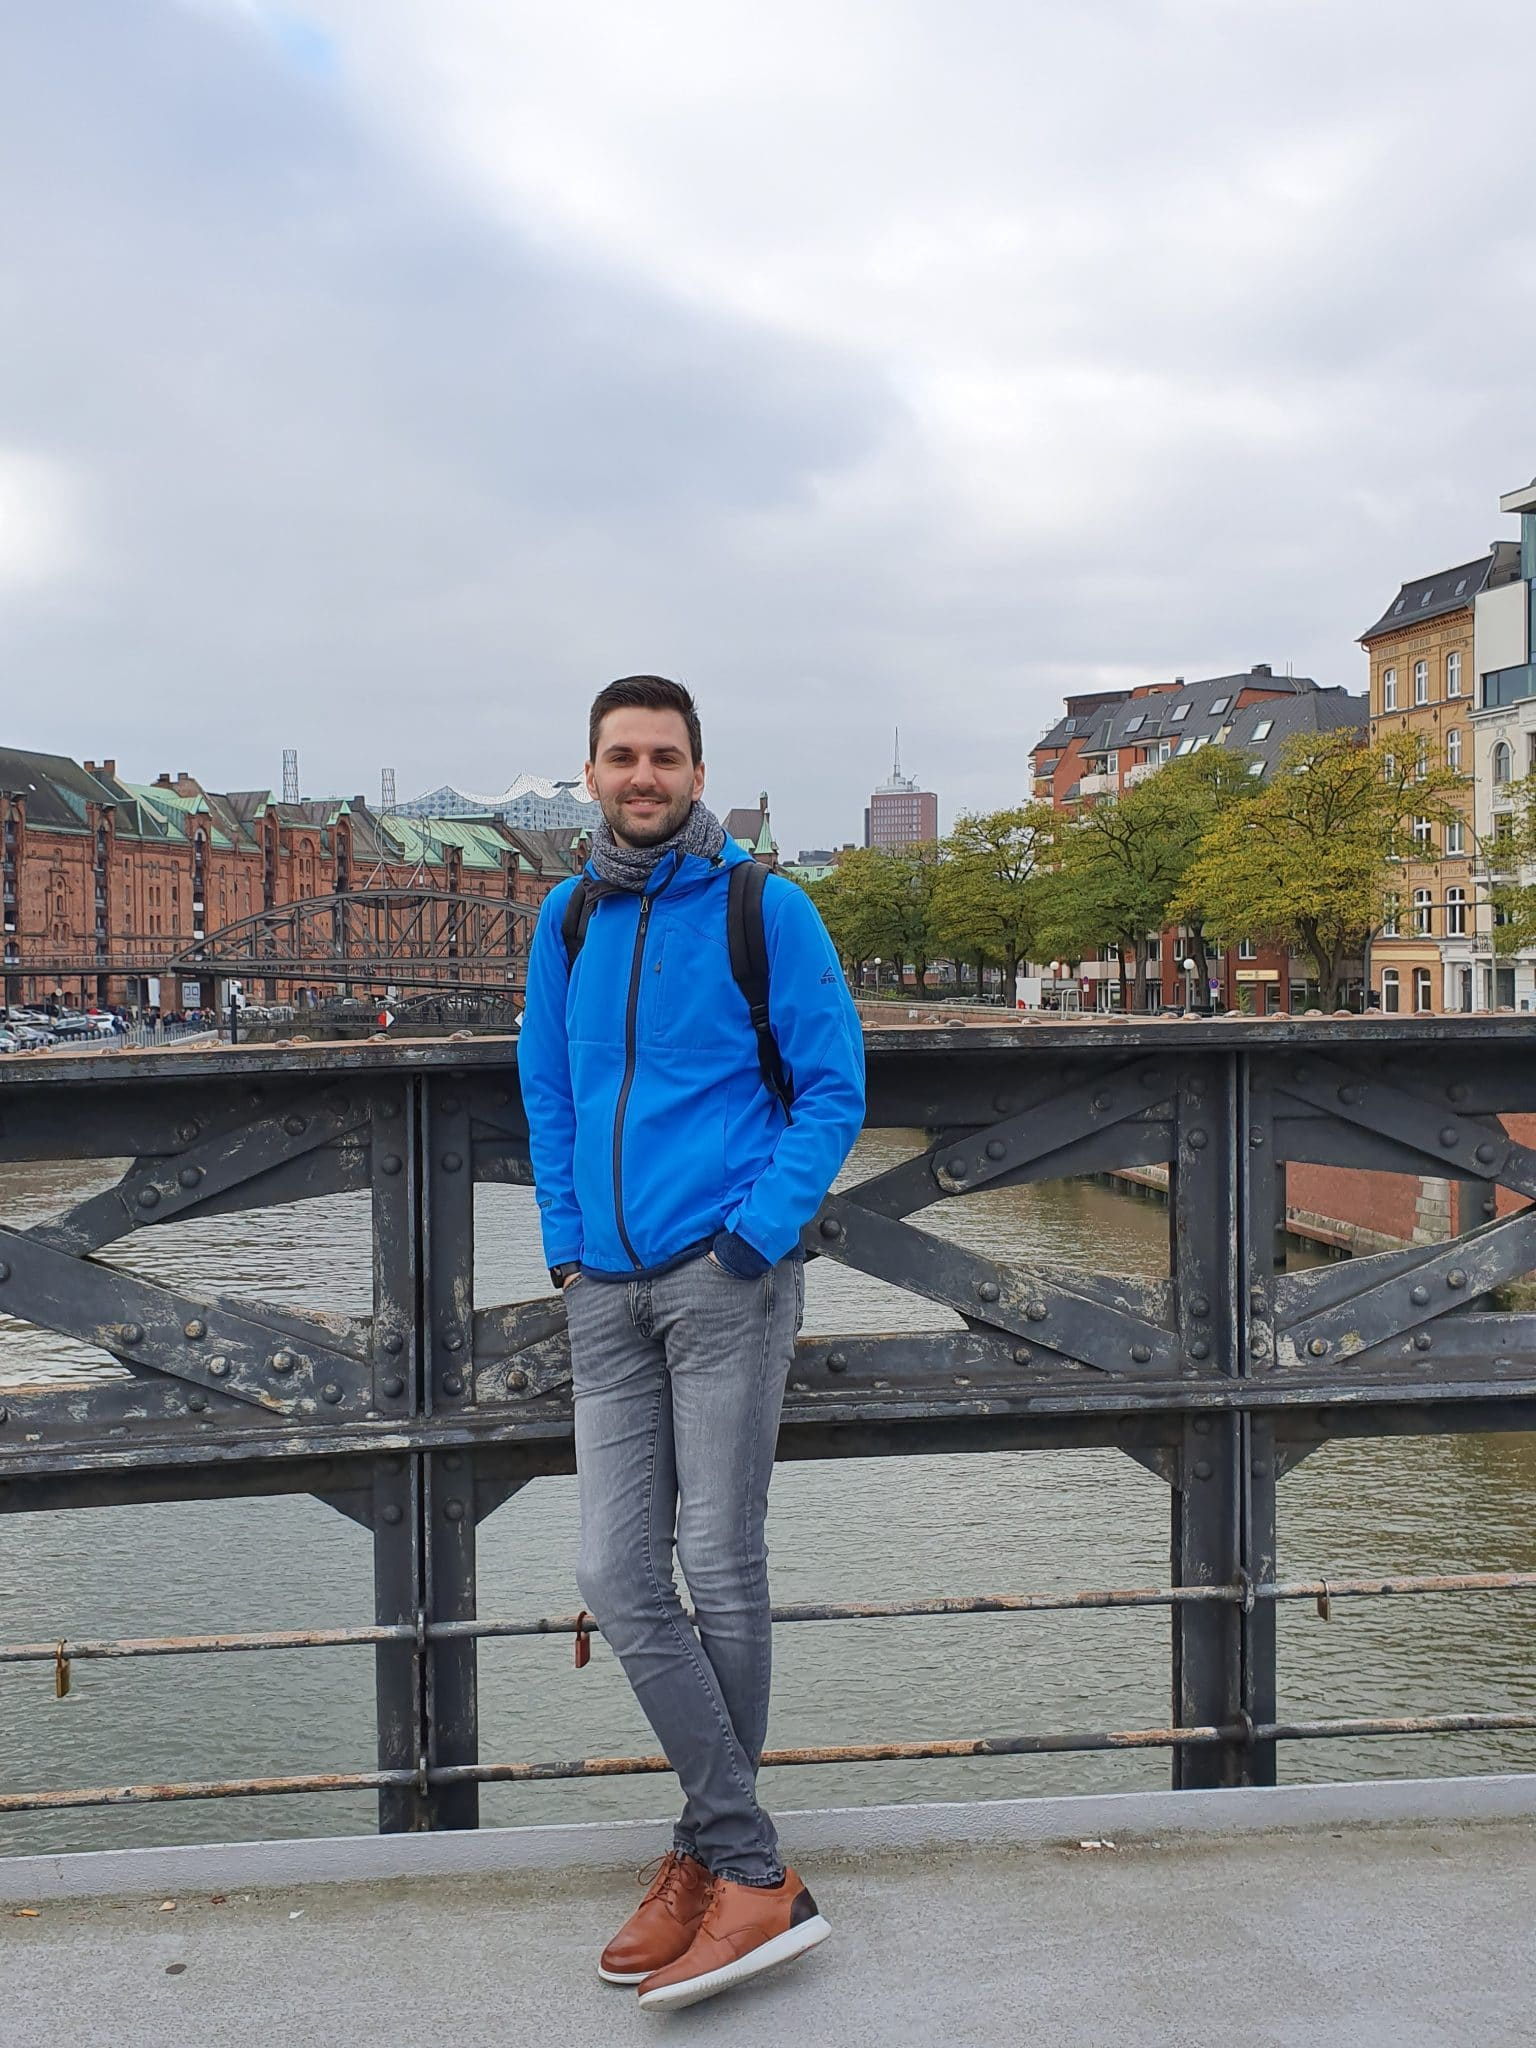 Dominik Vinke poses for a photo on a bridge in a city in Europe.